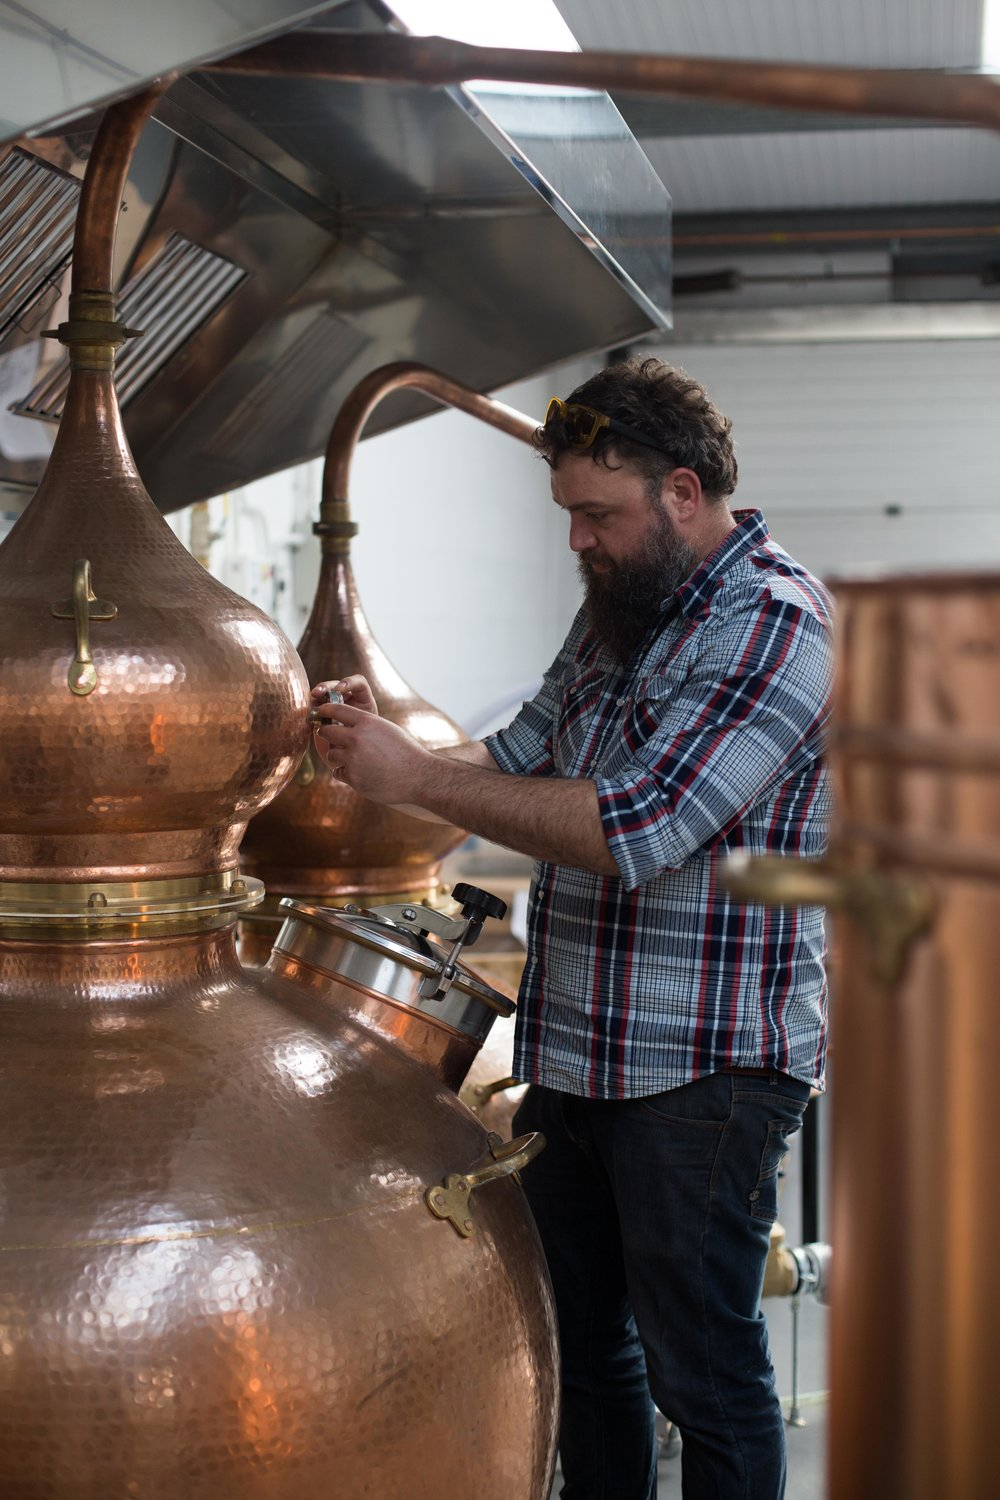 Shaun checks the temperature gauge on one of the copper stills in which the gin is distilled.